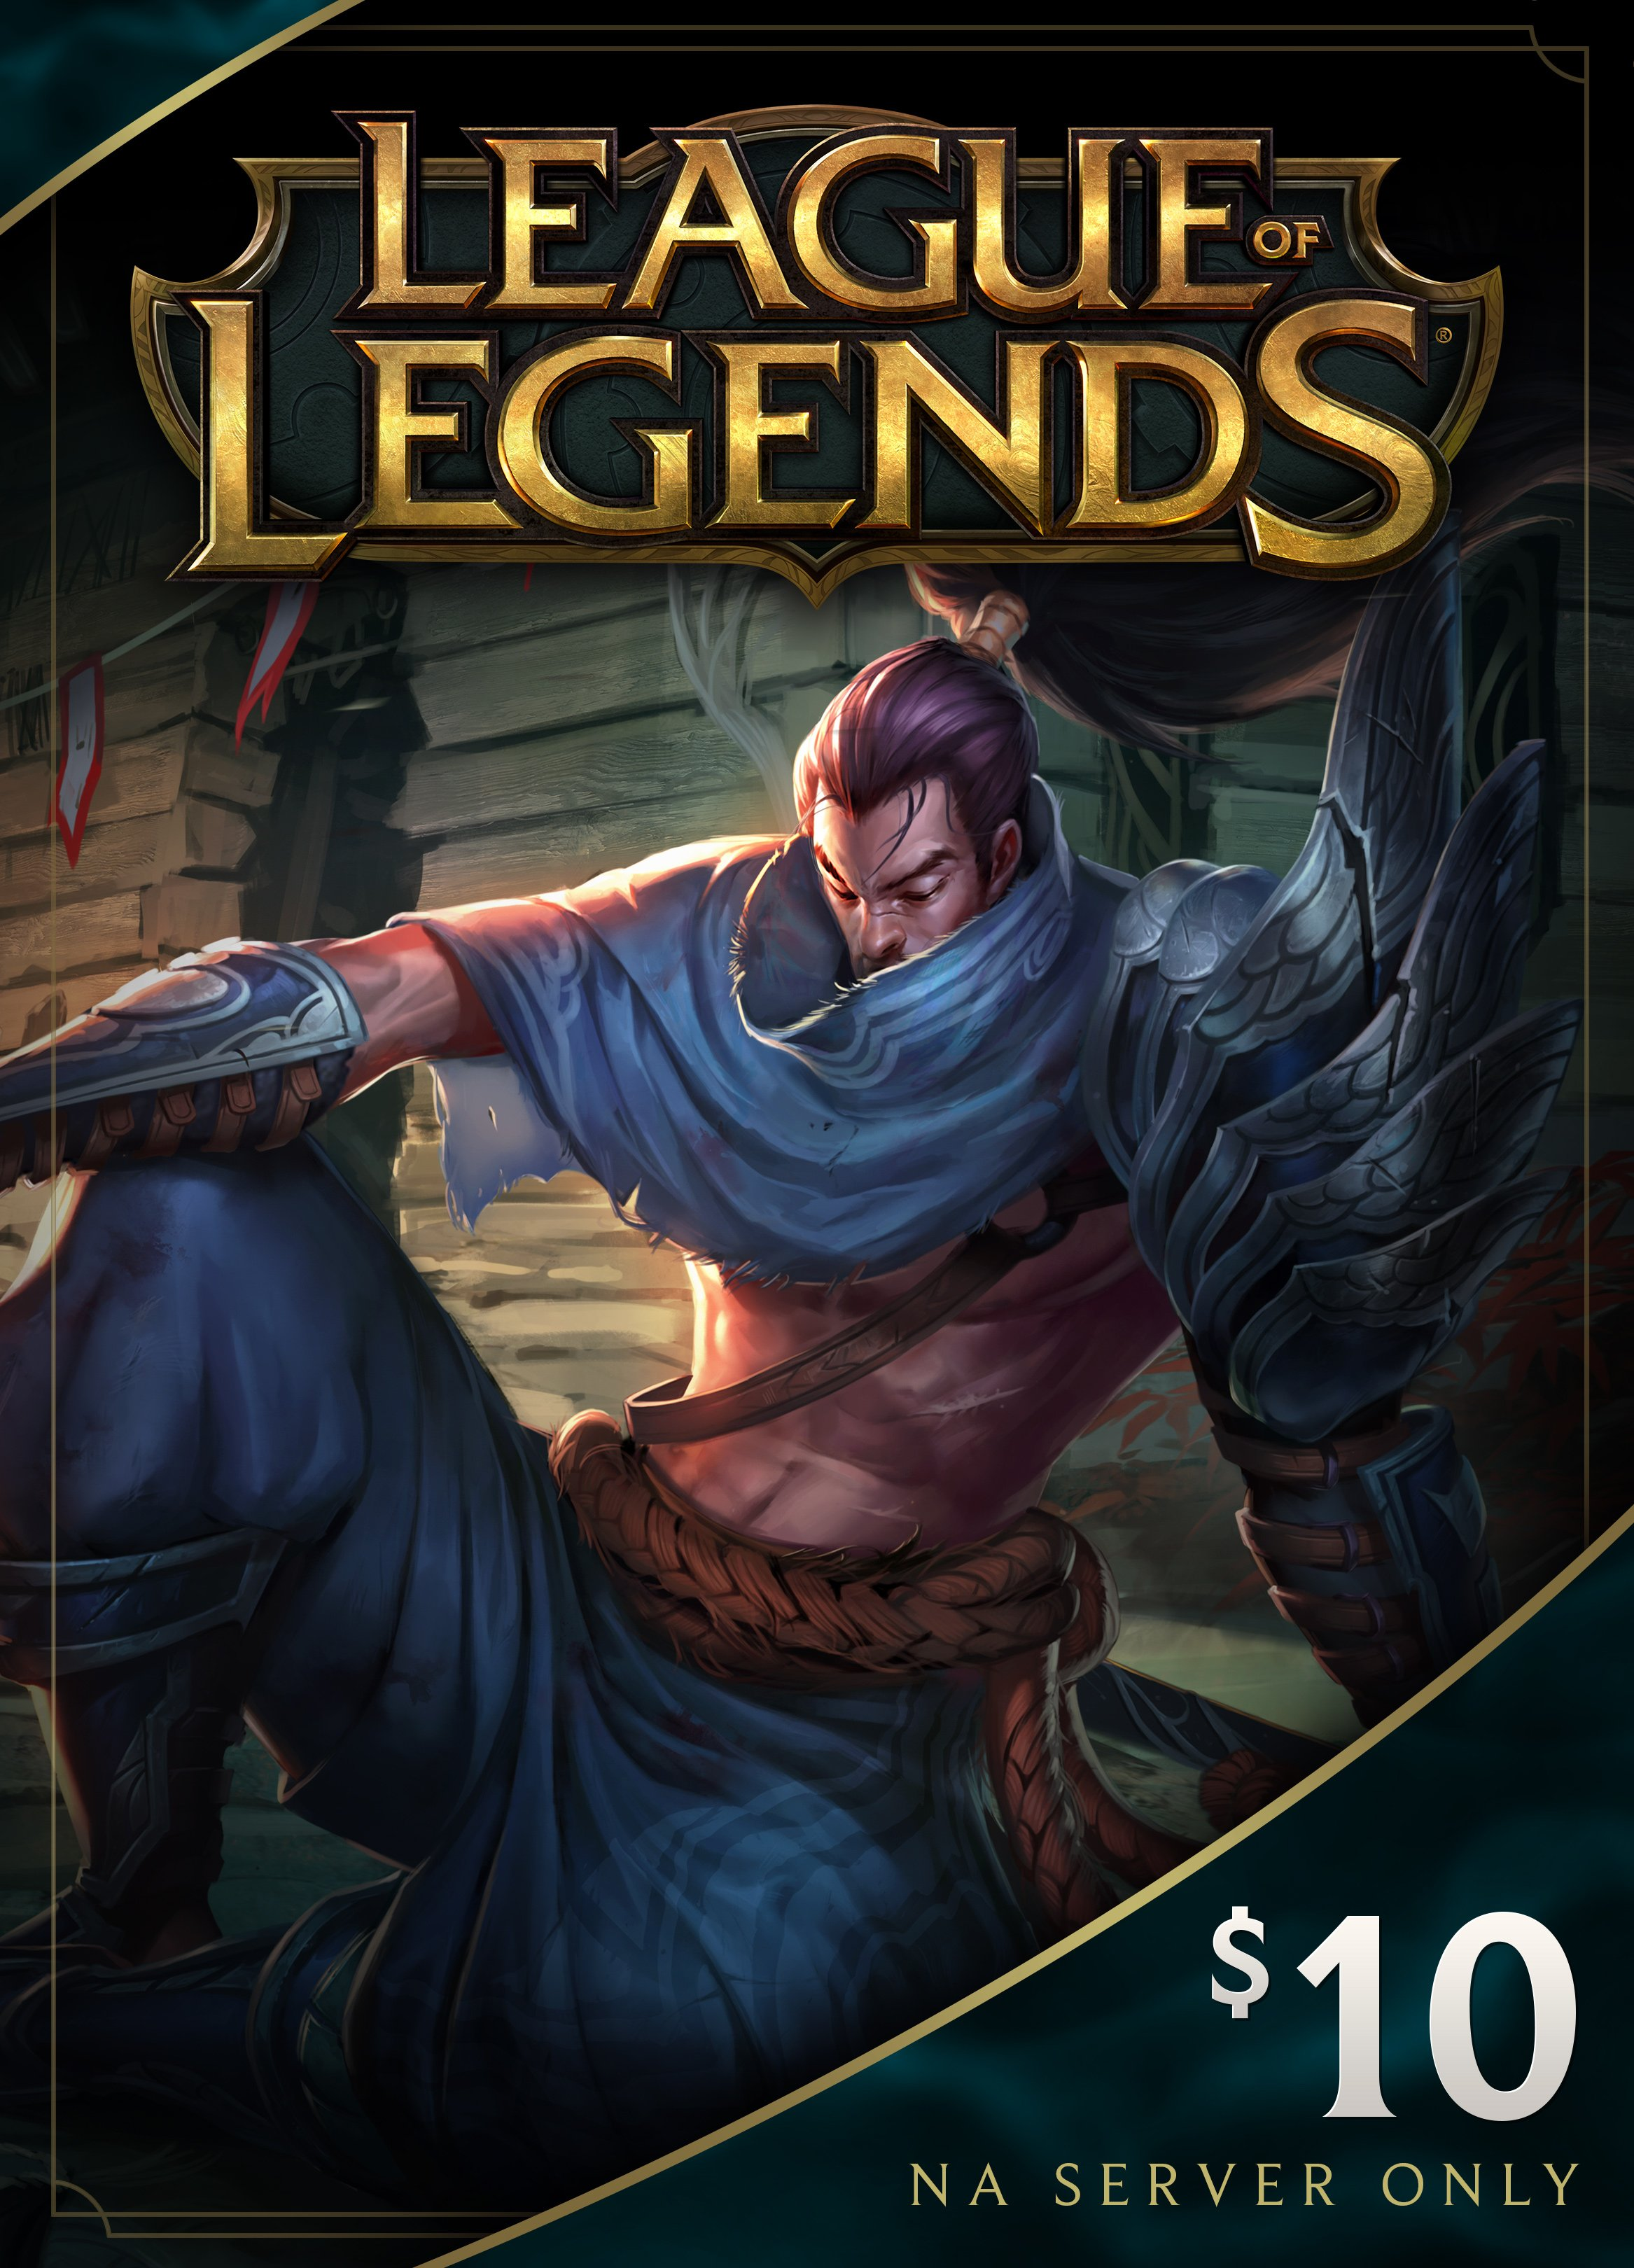 League of Legends $10 Card 1380 Riot Points NA only